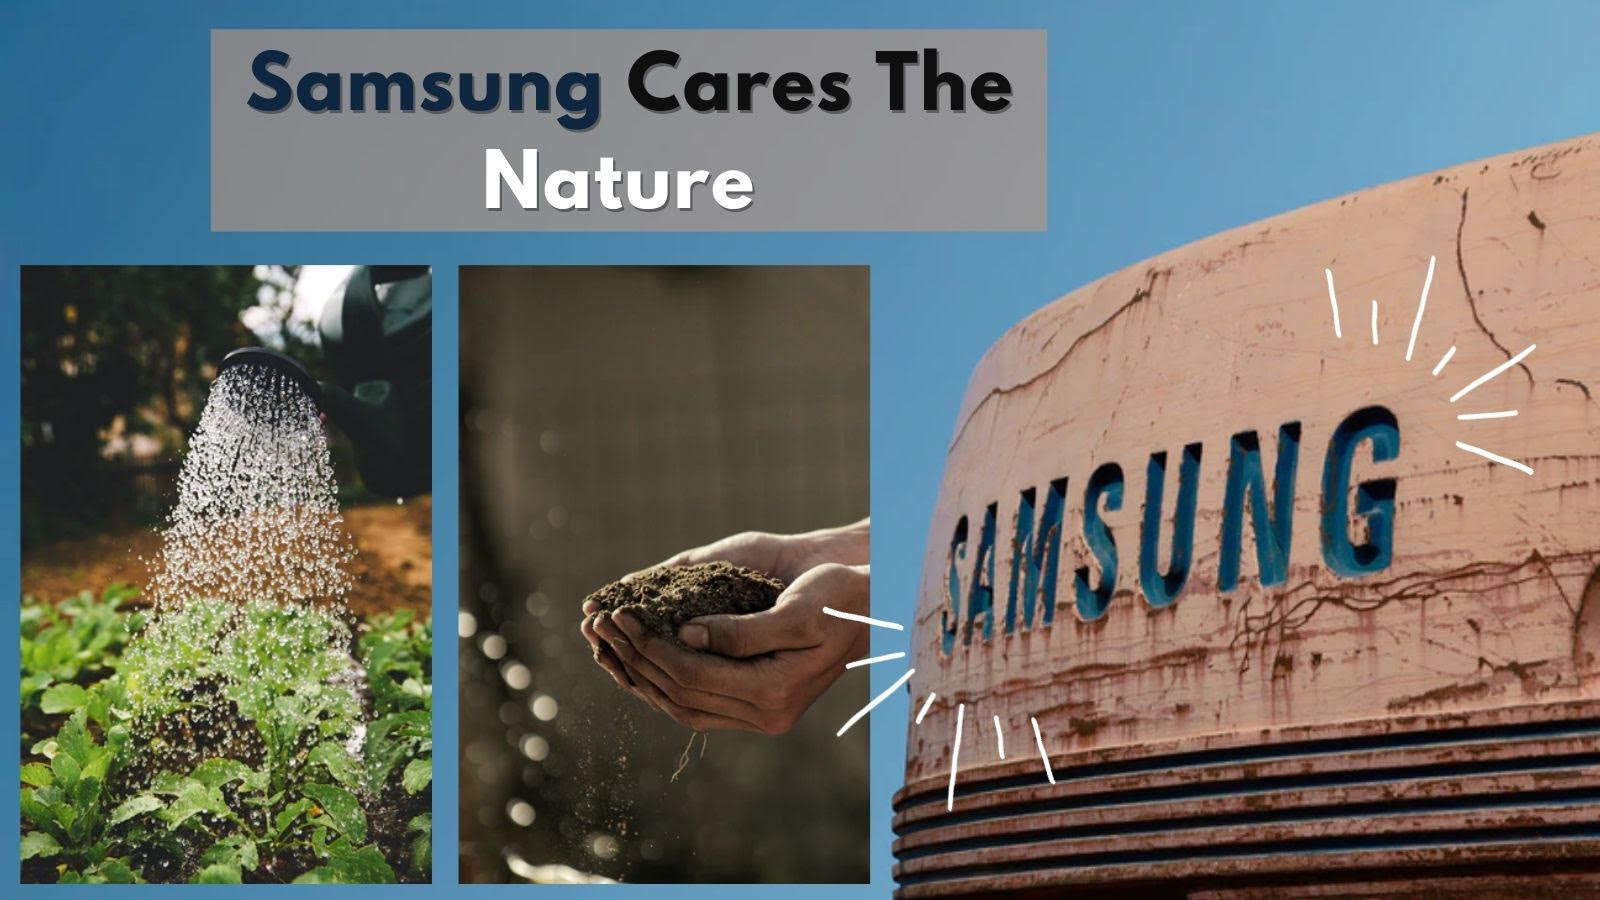 Samsung Step Towards Our Nature